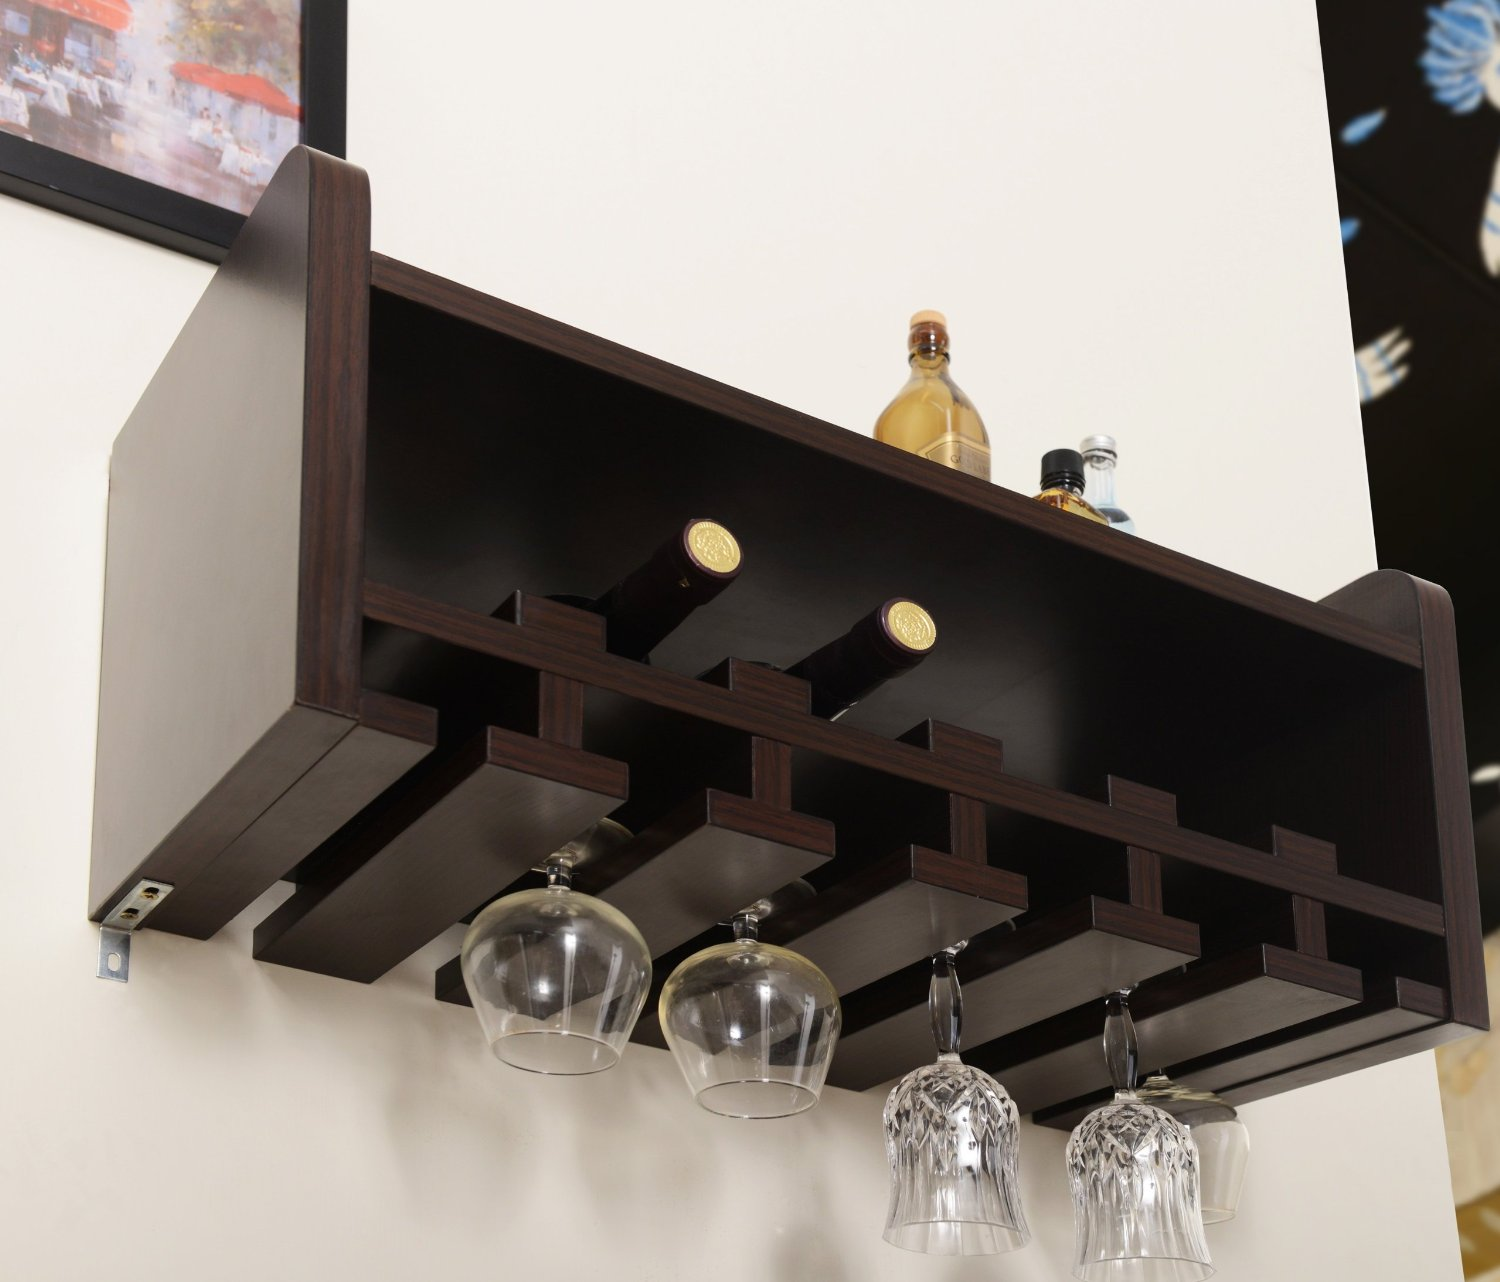 Ceiling Mounted Wine Glass Holder